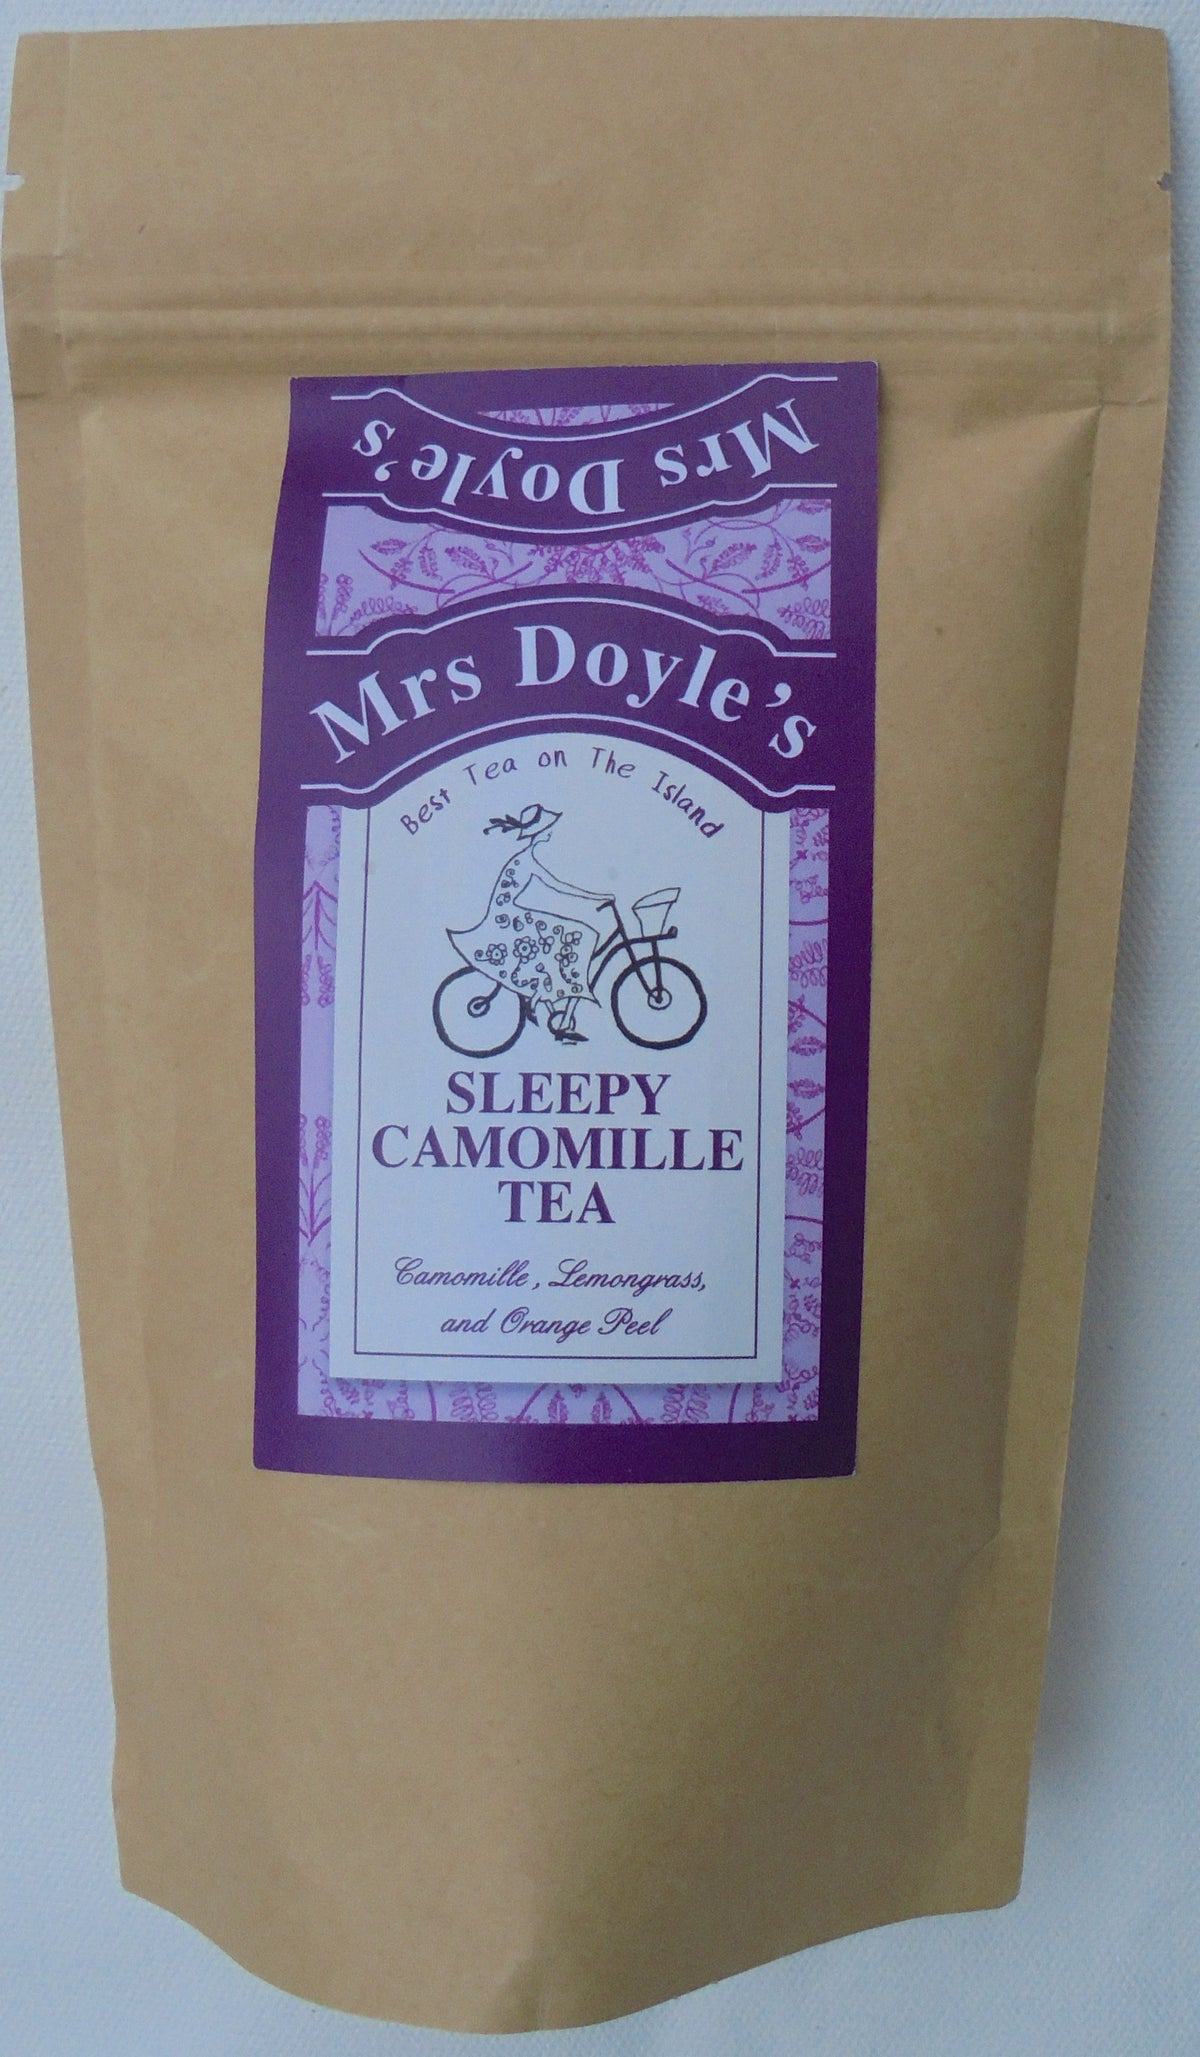 Mrs Doyle's Sleepy Chamomile tea is a blend of chamomile flowers, lemon